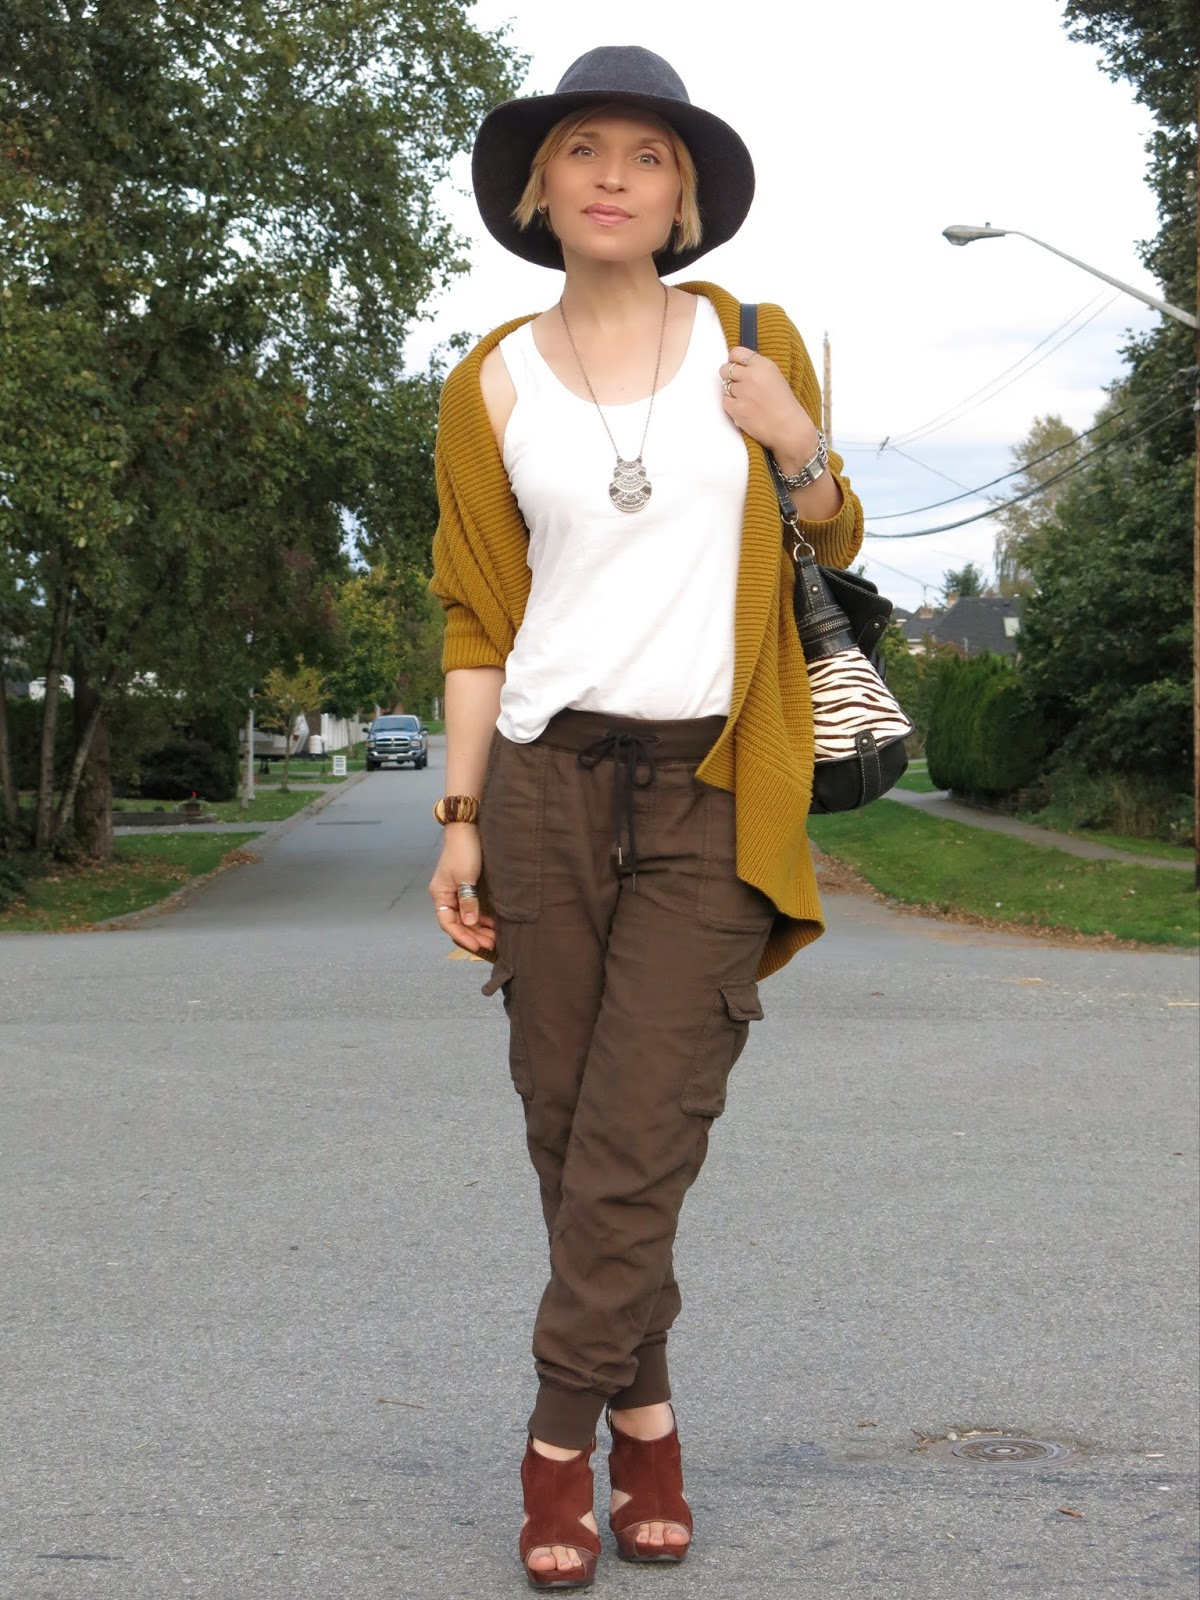 Crunch time:  slouchy cargo pants with a mustard cardi and floppy hat